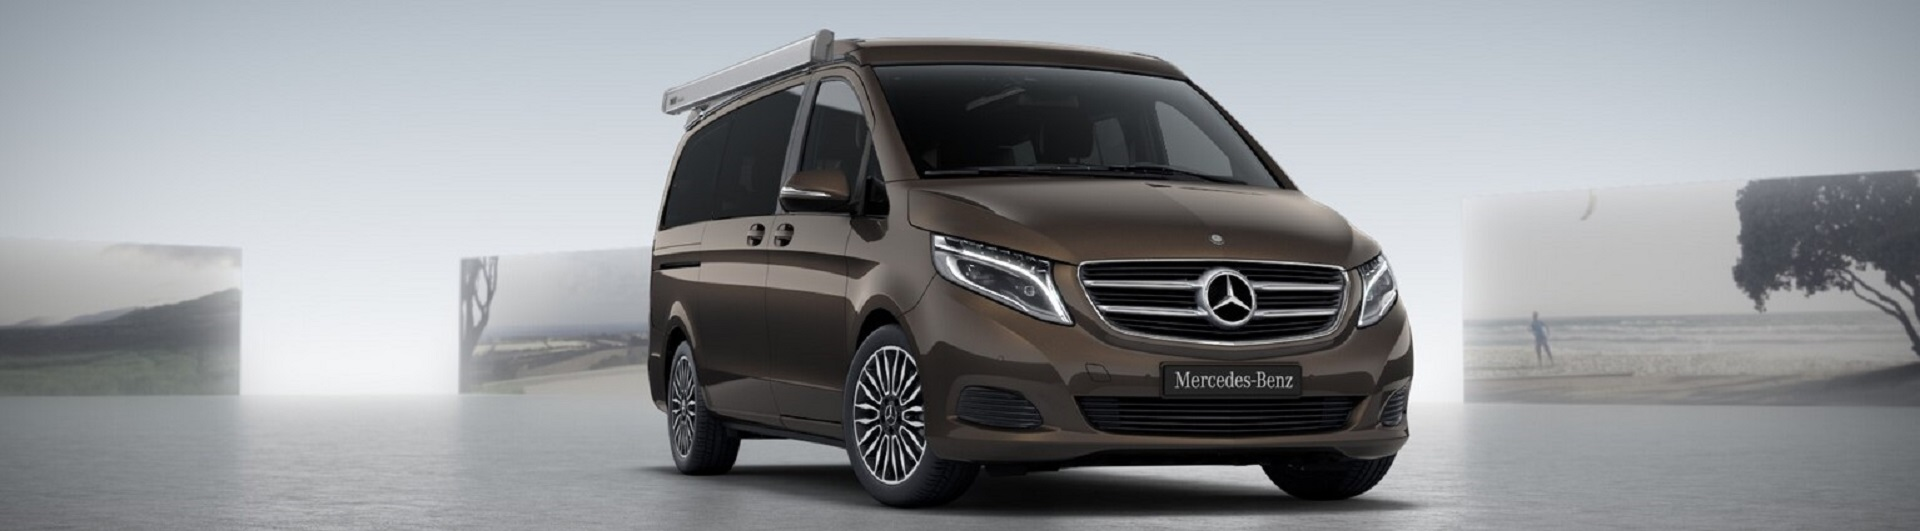 Marco Polo Edition 250d 7G-TRONIC PLUS 190PS 4MATIC